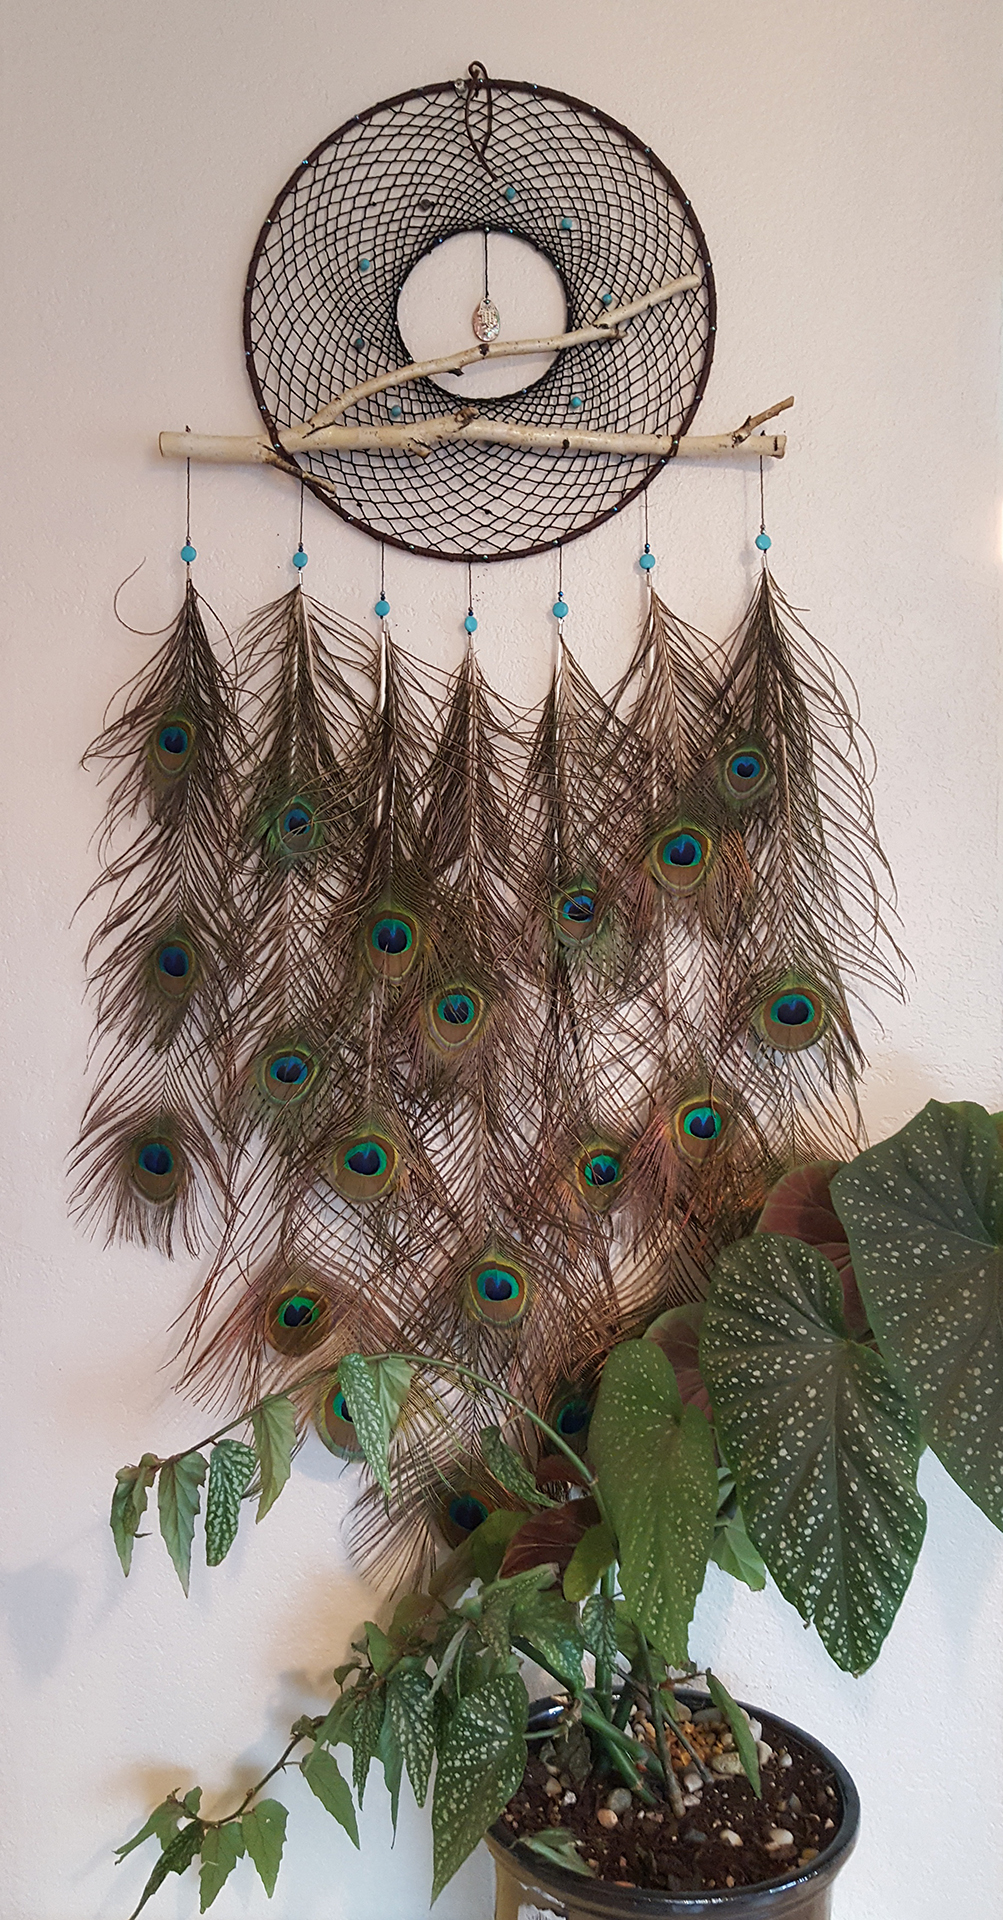 Raven Dimaggio, Peacock Dream Catcher, leather, feathers, metal